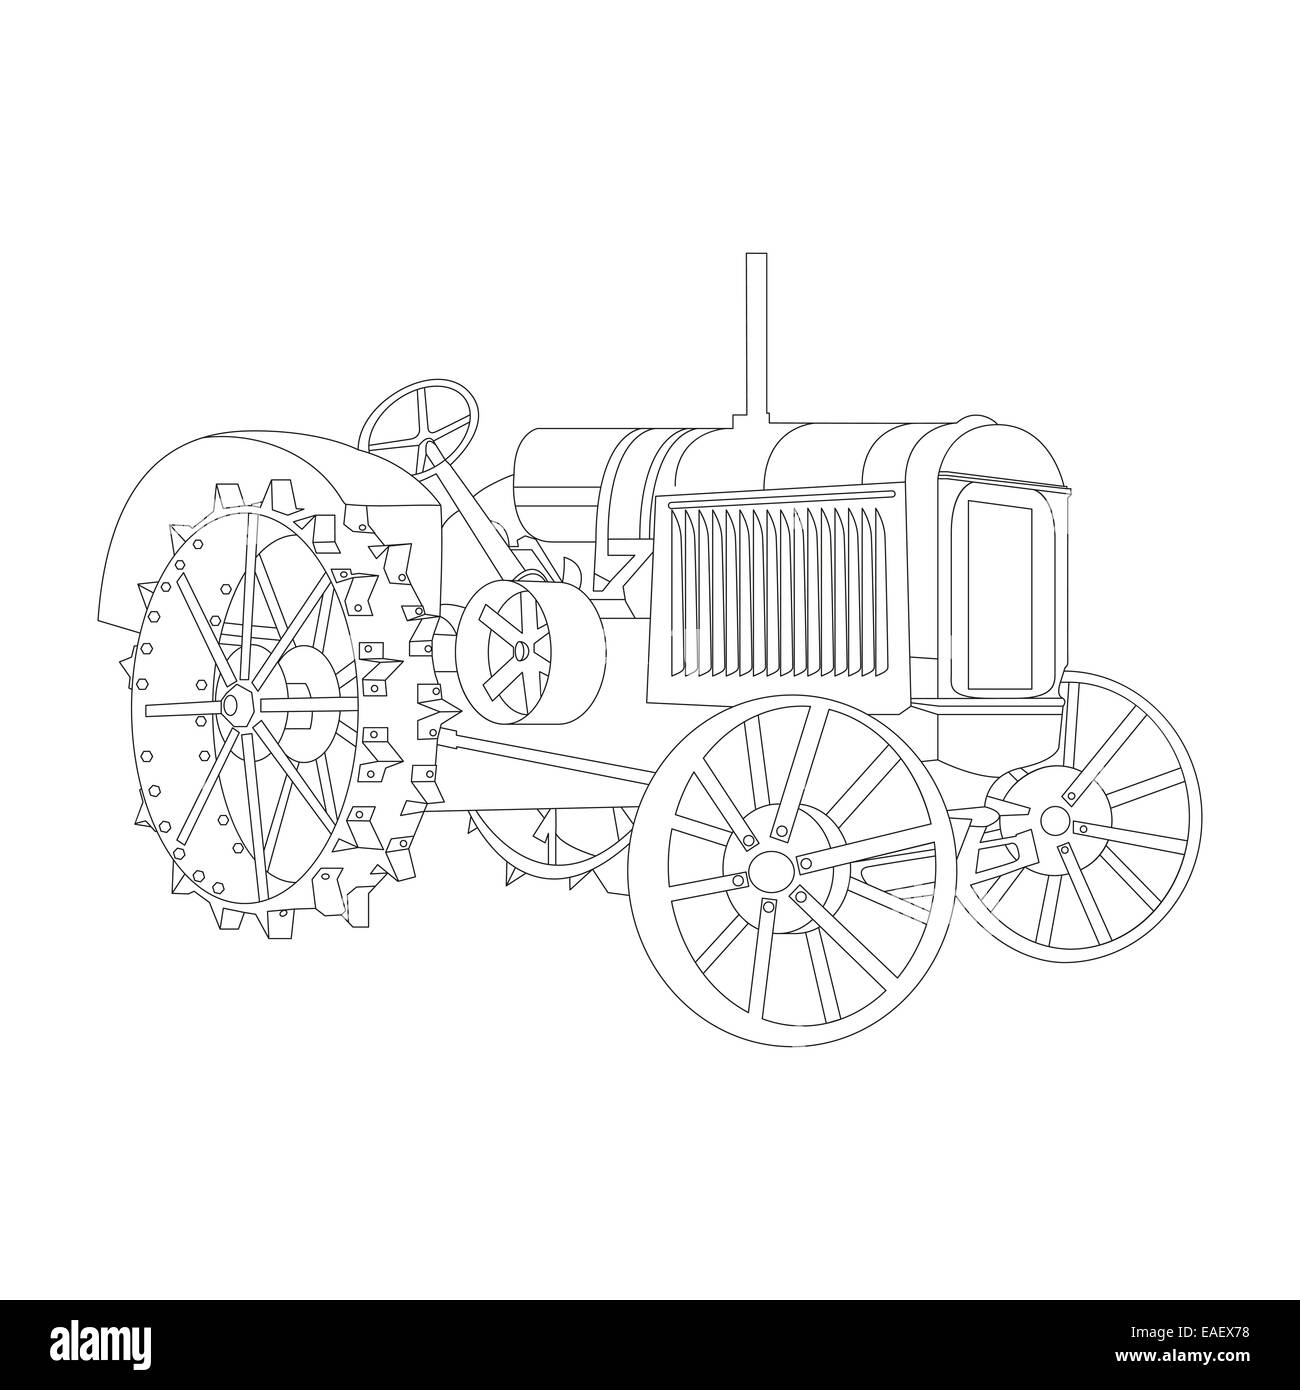 The contour of the old tractor release 1932 - Stock Image